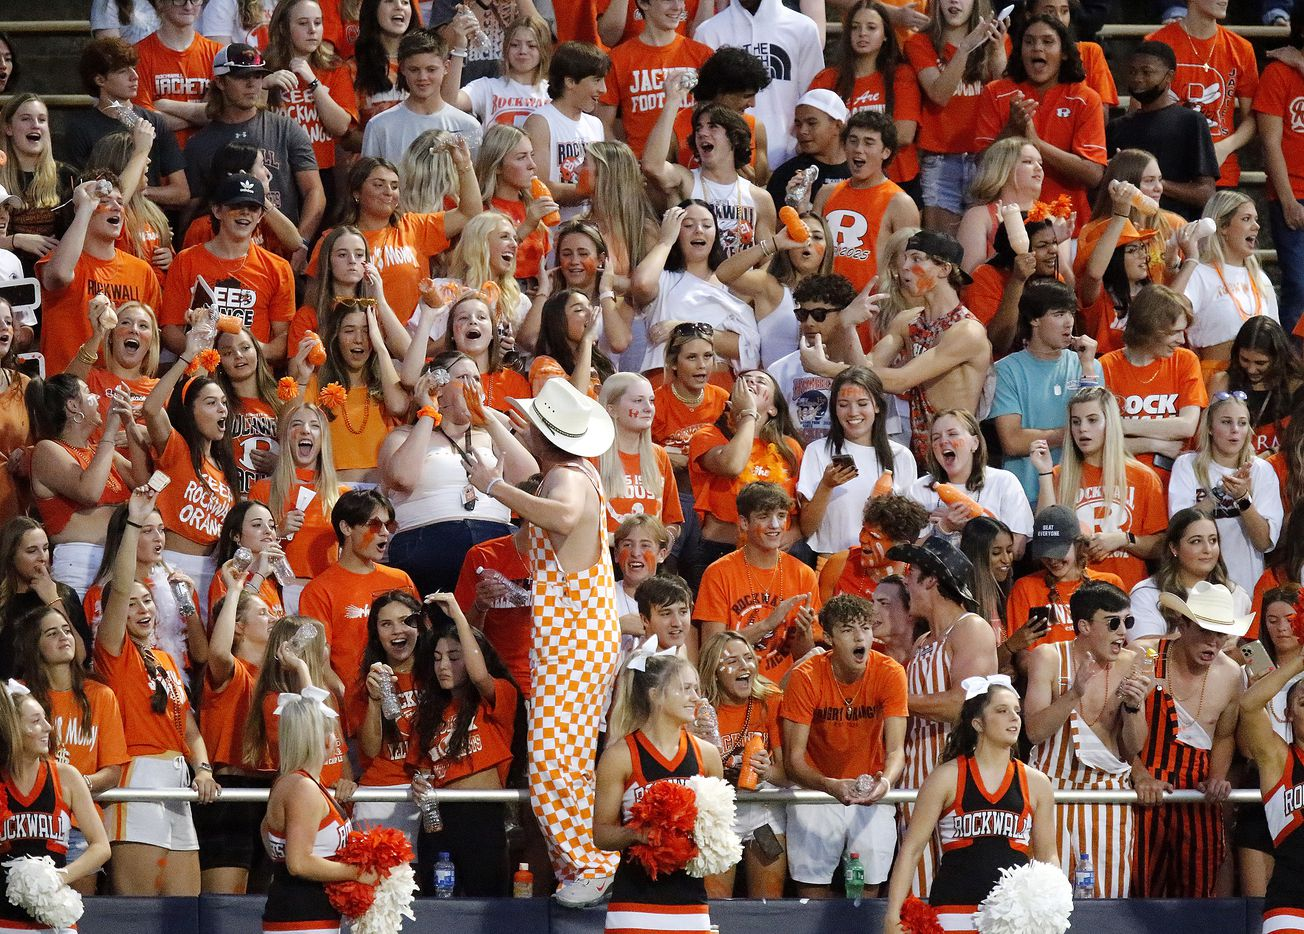 The Rockwall High School student section celebrates a touchdown during the first half as Highland Park High School hosted Rockwall High School at Highlander Stadium in Dallas on, Friday, September 17, 2021. (Stewart F. House/Special Contributor)